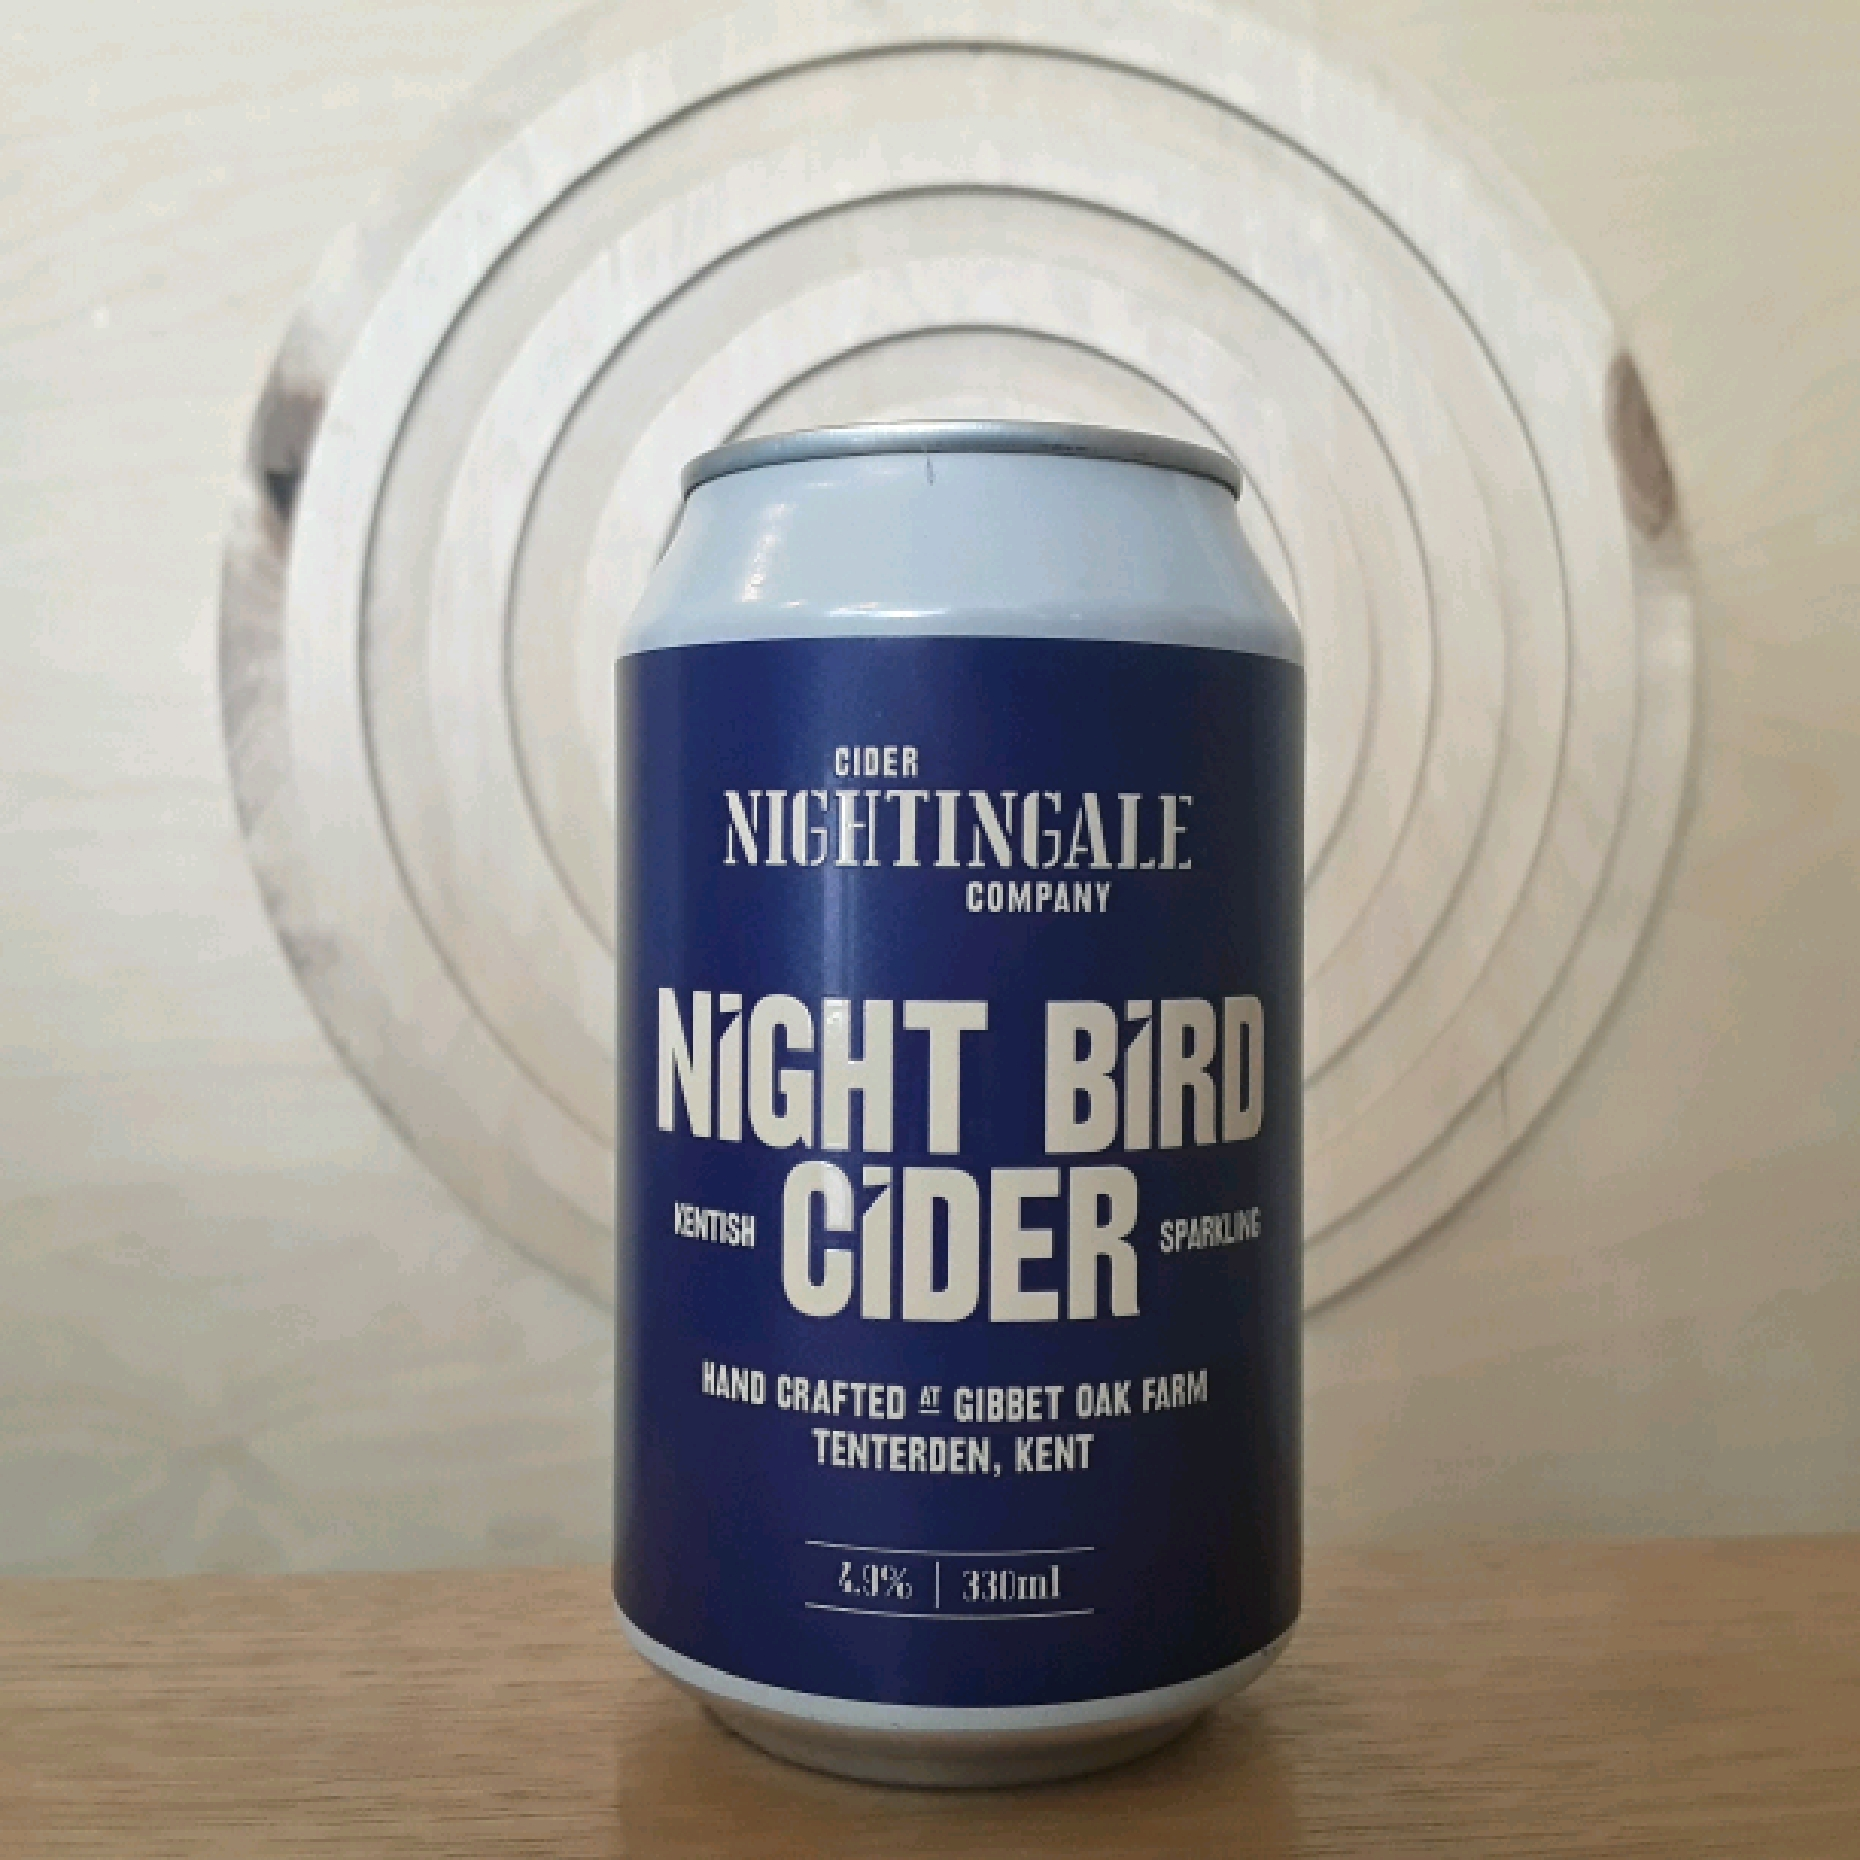 Nightingale Cider | Night Bird | Sparkling Cider